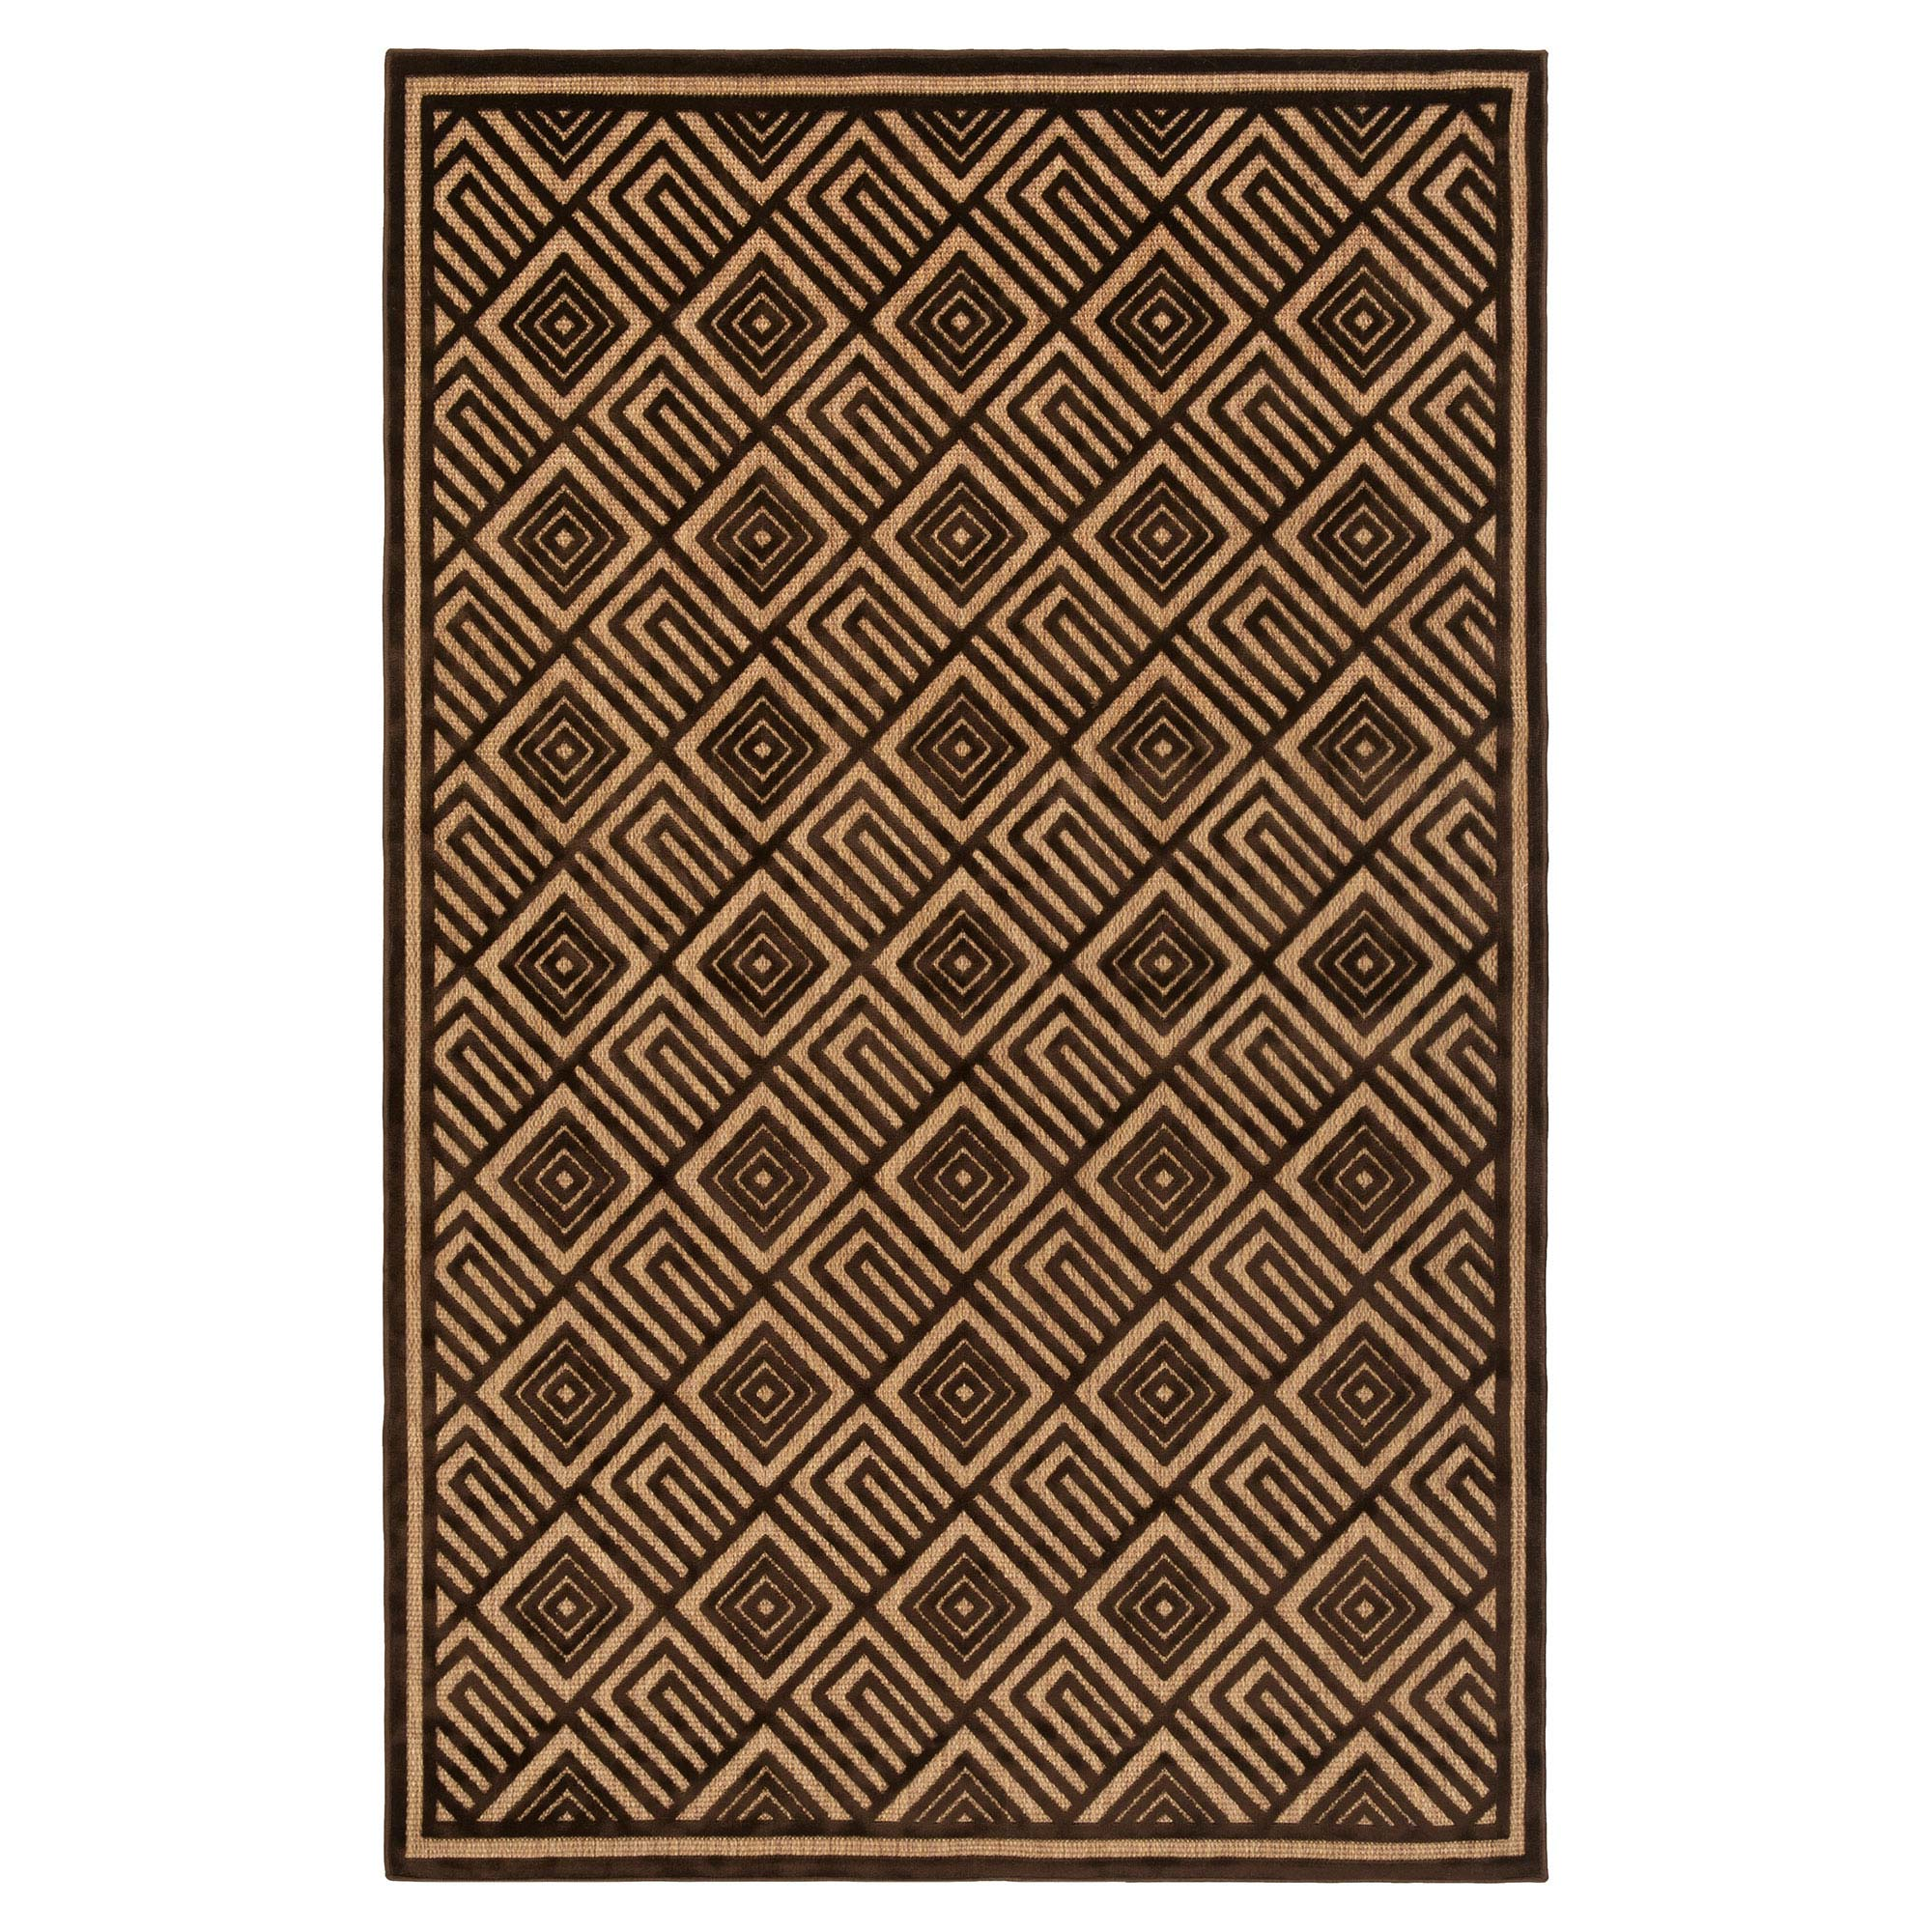 Anouk Global Dark Brown Geometric Outdoor Rug - 3'9x5'8